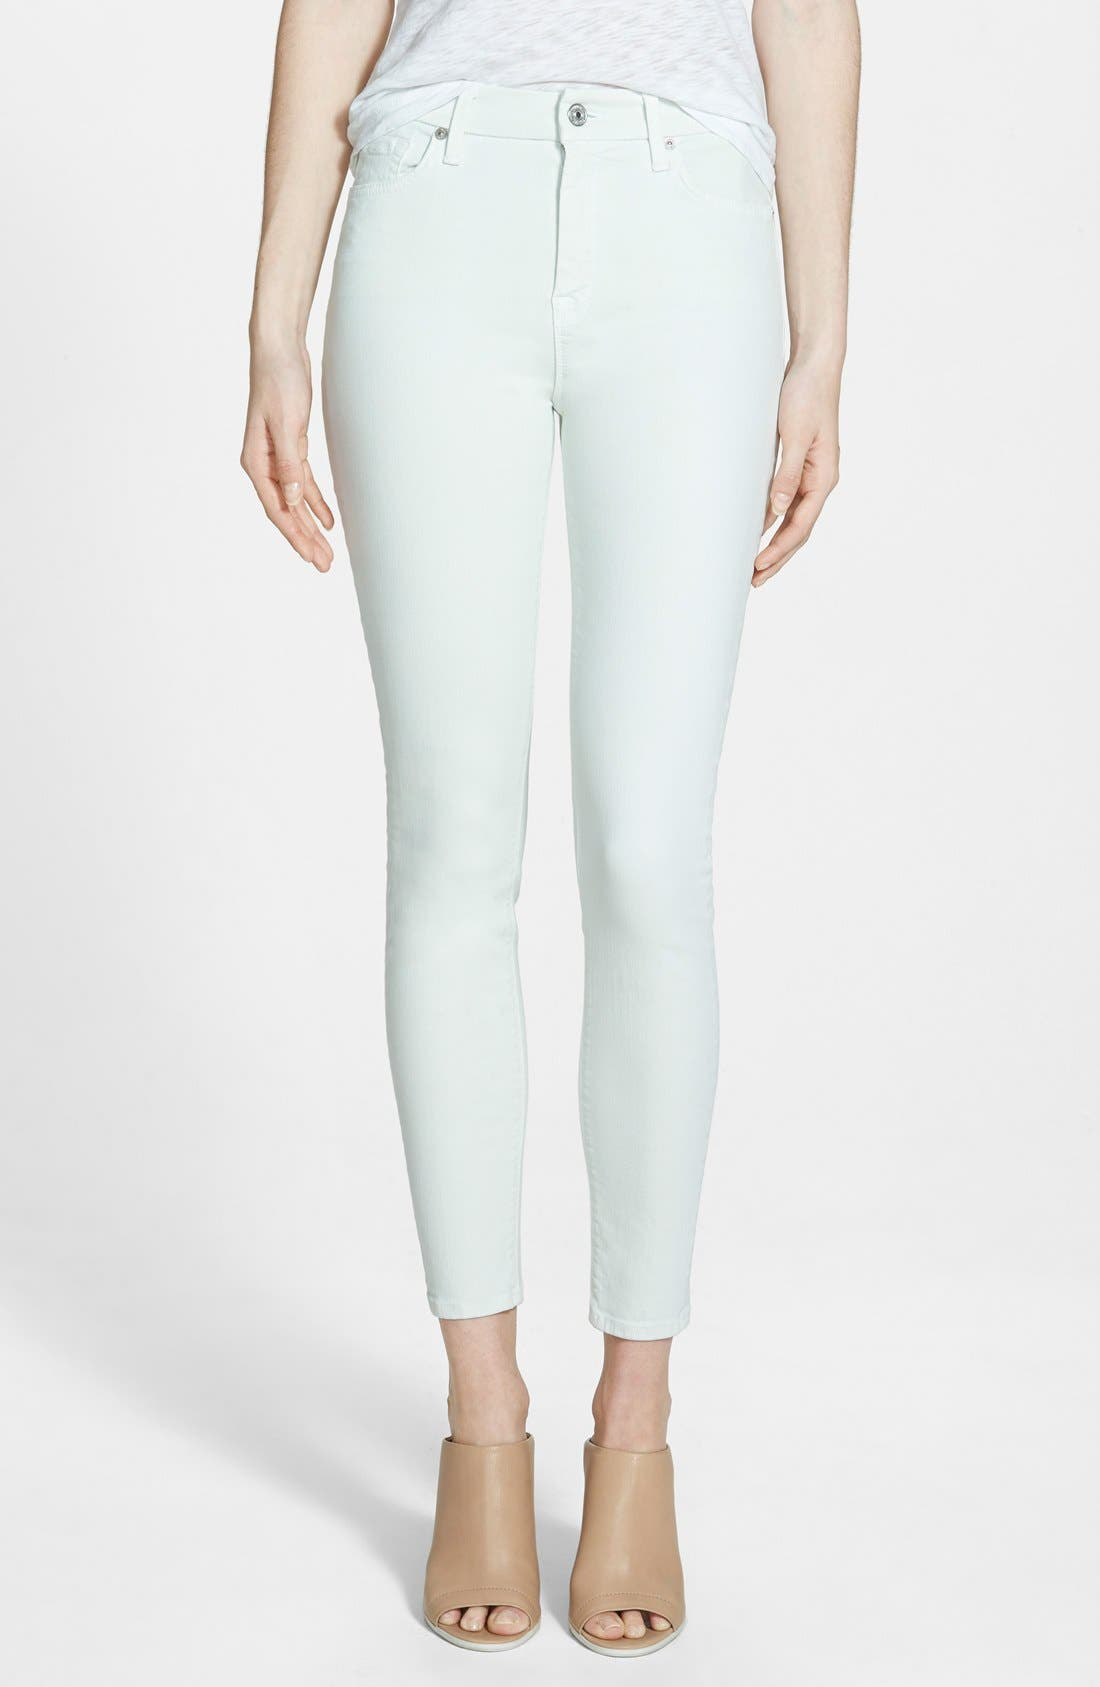 Alternate Image 1 Selected - 7 For All Mankind® High Rise Ankle Skinny Jeans (Light Mint)